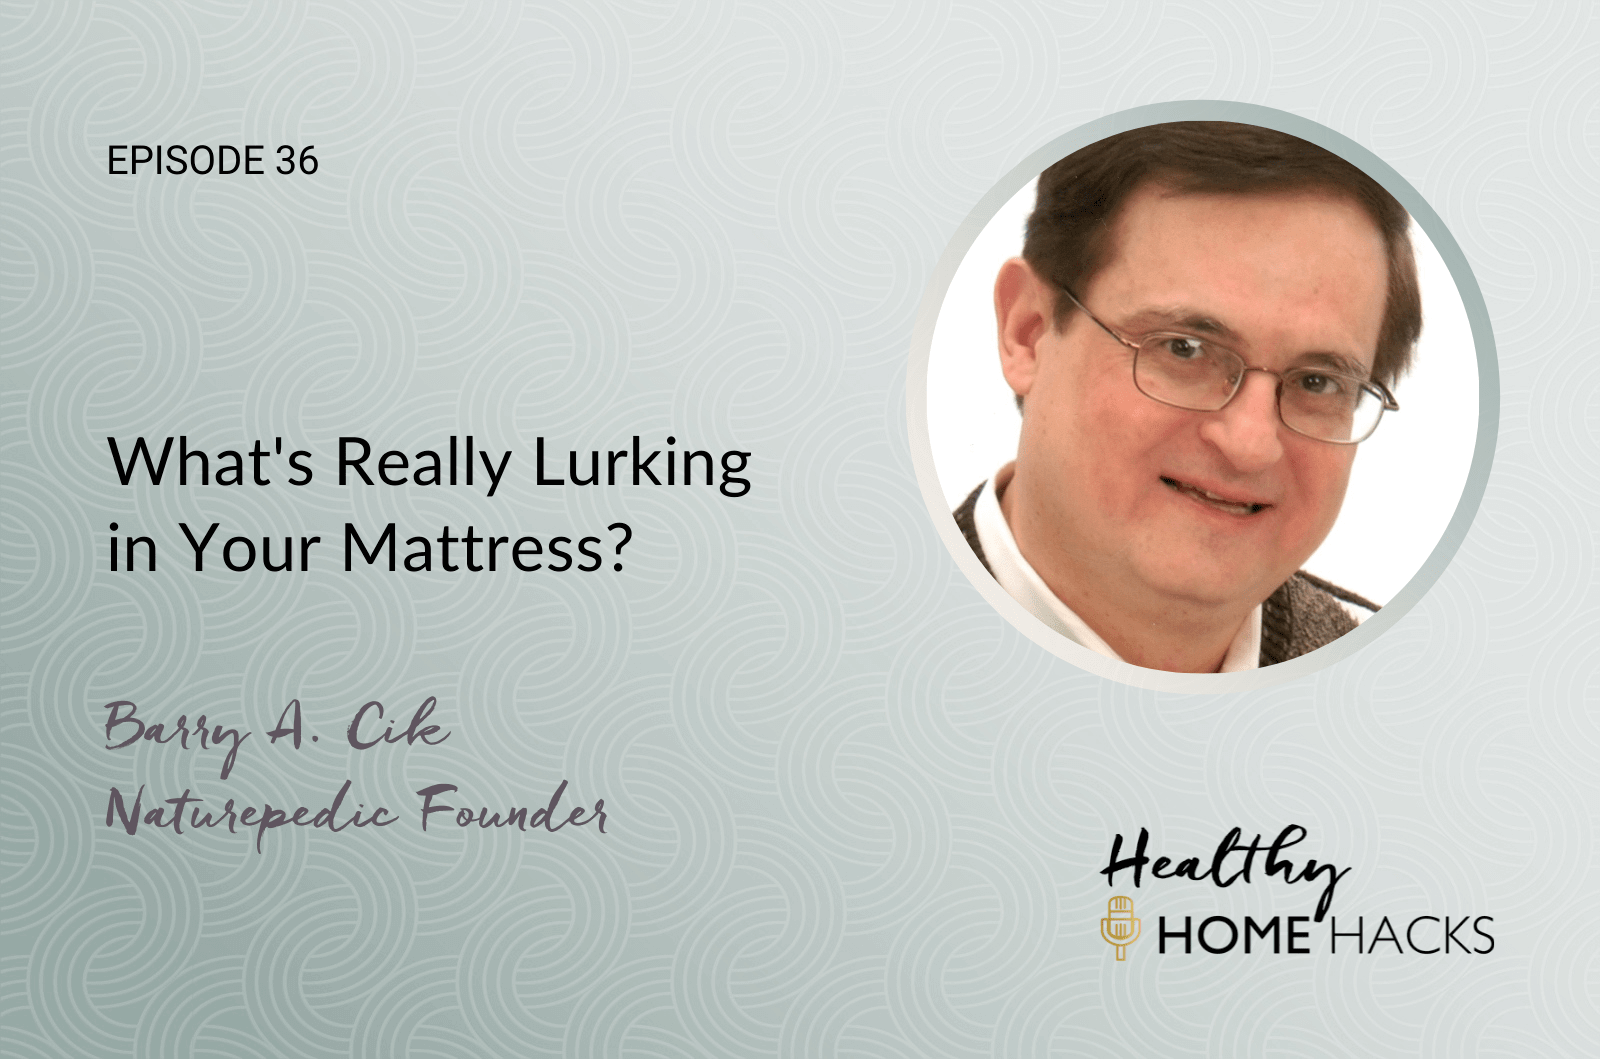 What's Really Lurking in Your Mattress?